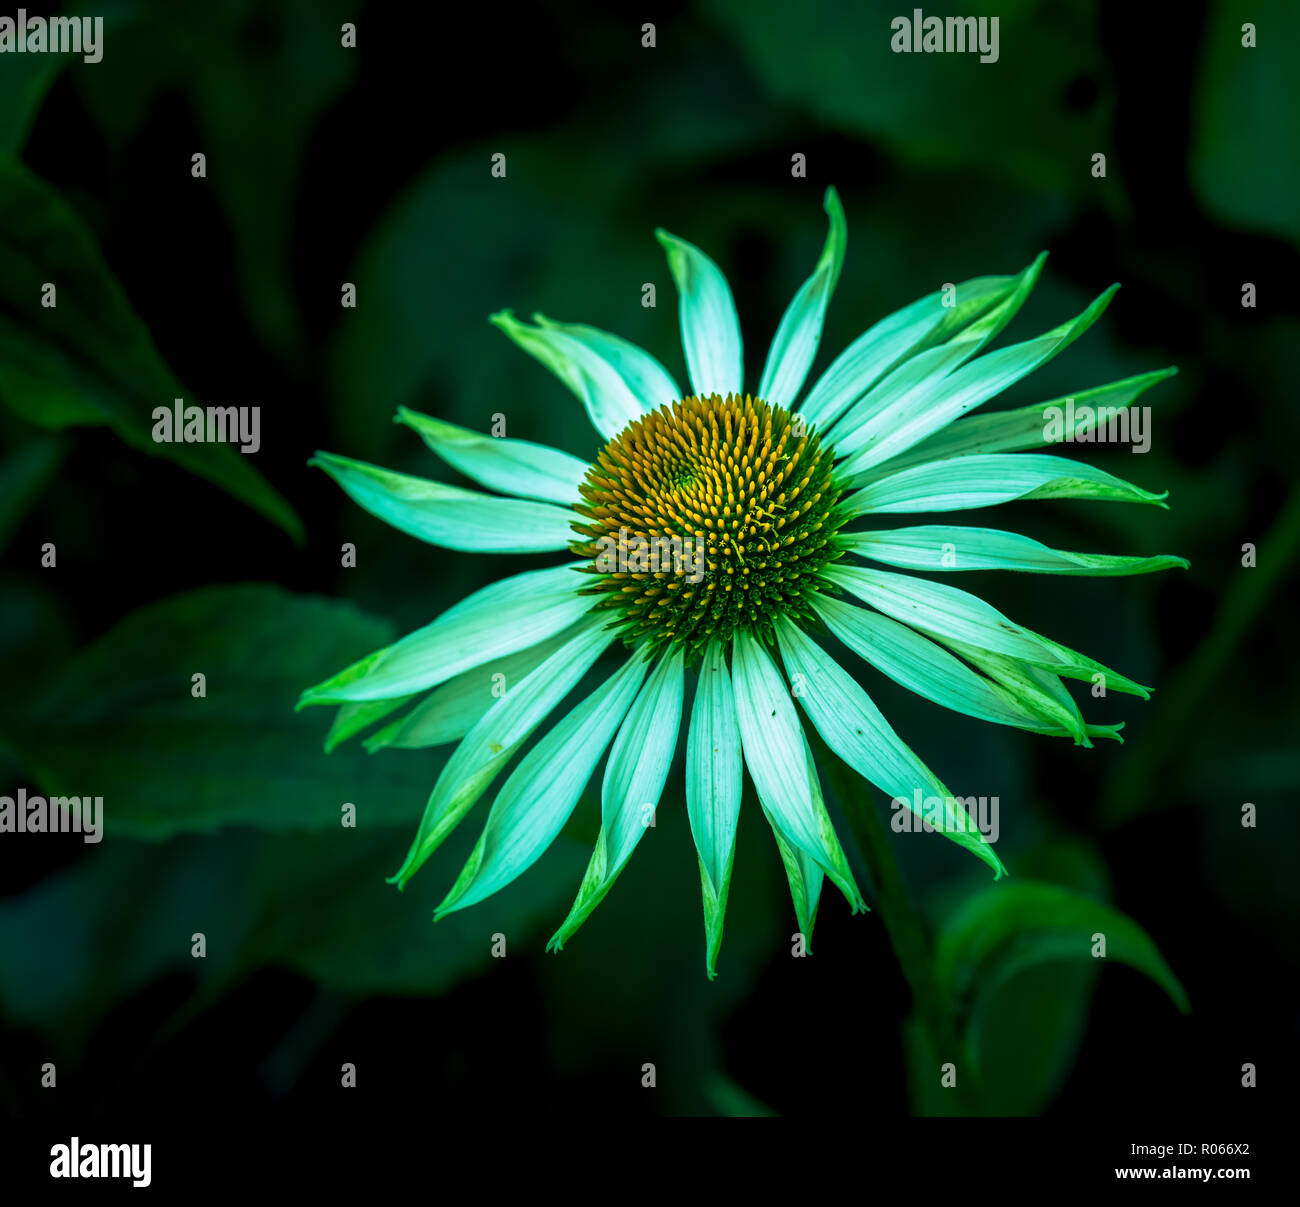 Surrealistic green neon colored outdoor floral macro of a wide open white yellow coneflower/echinacea blossom on natural blurred colorful background - Stock Image